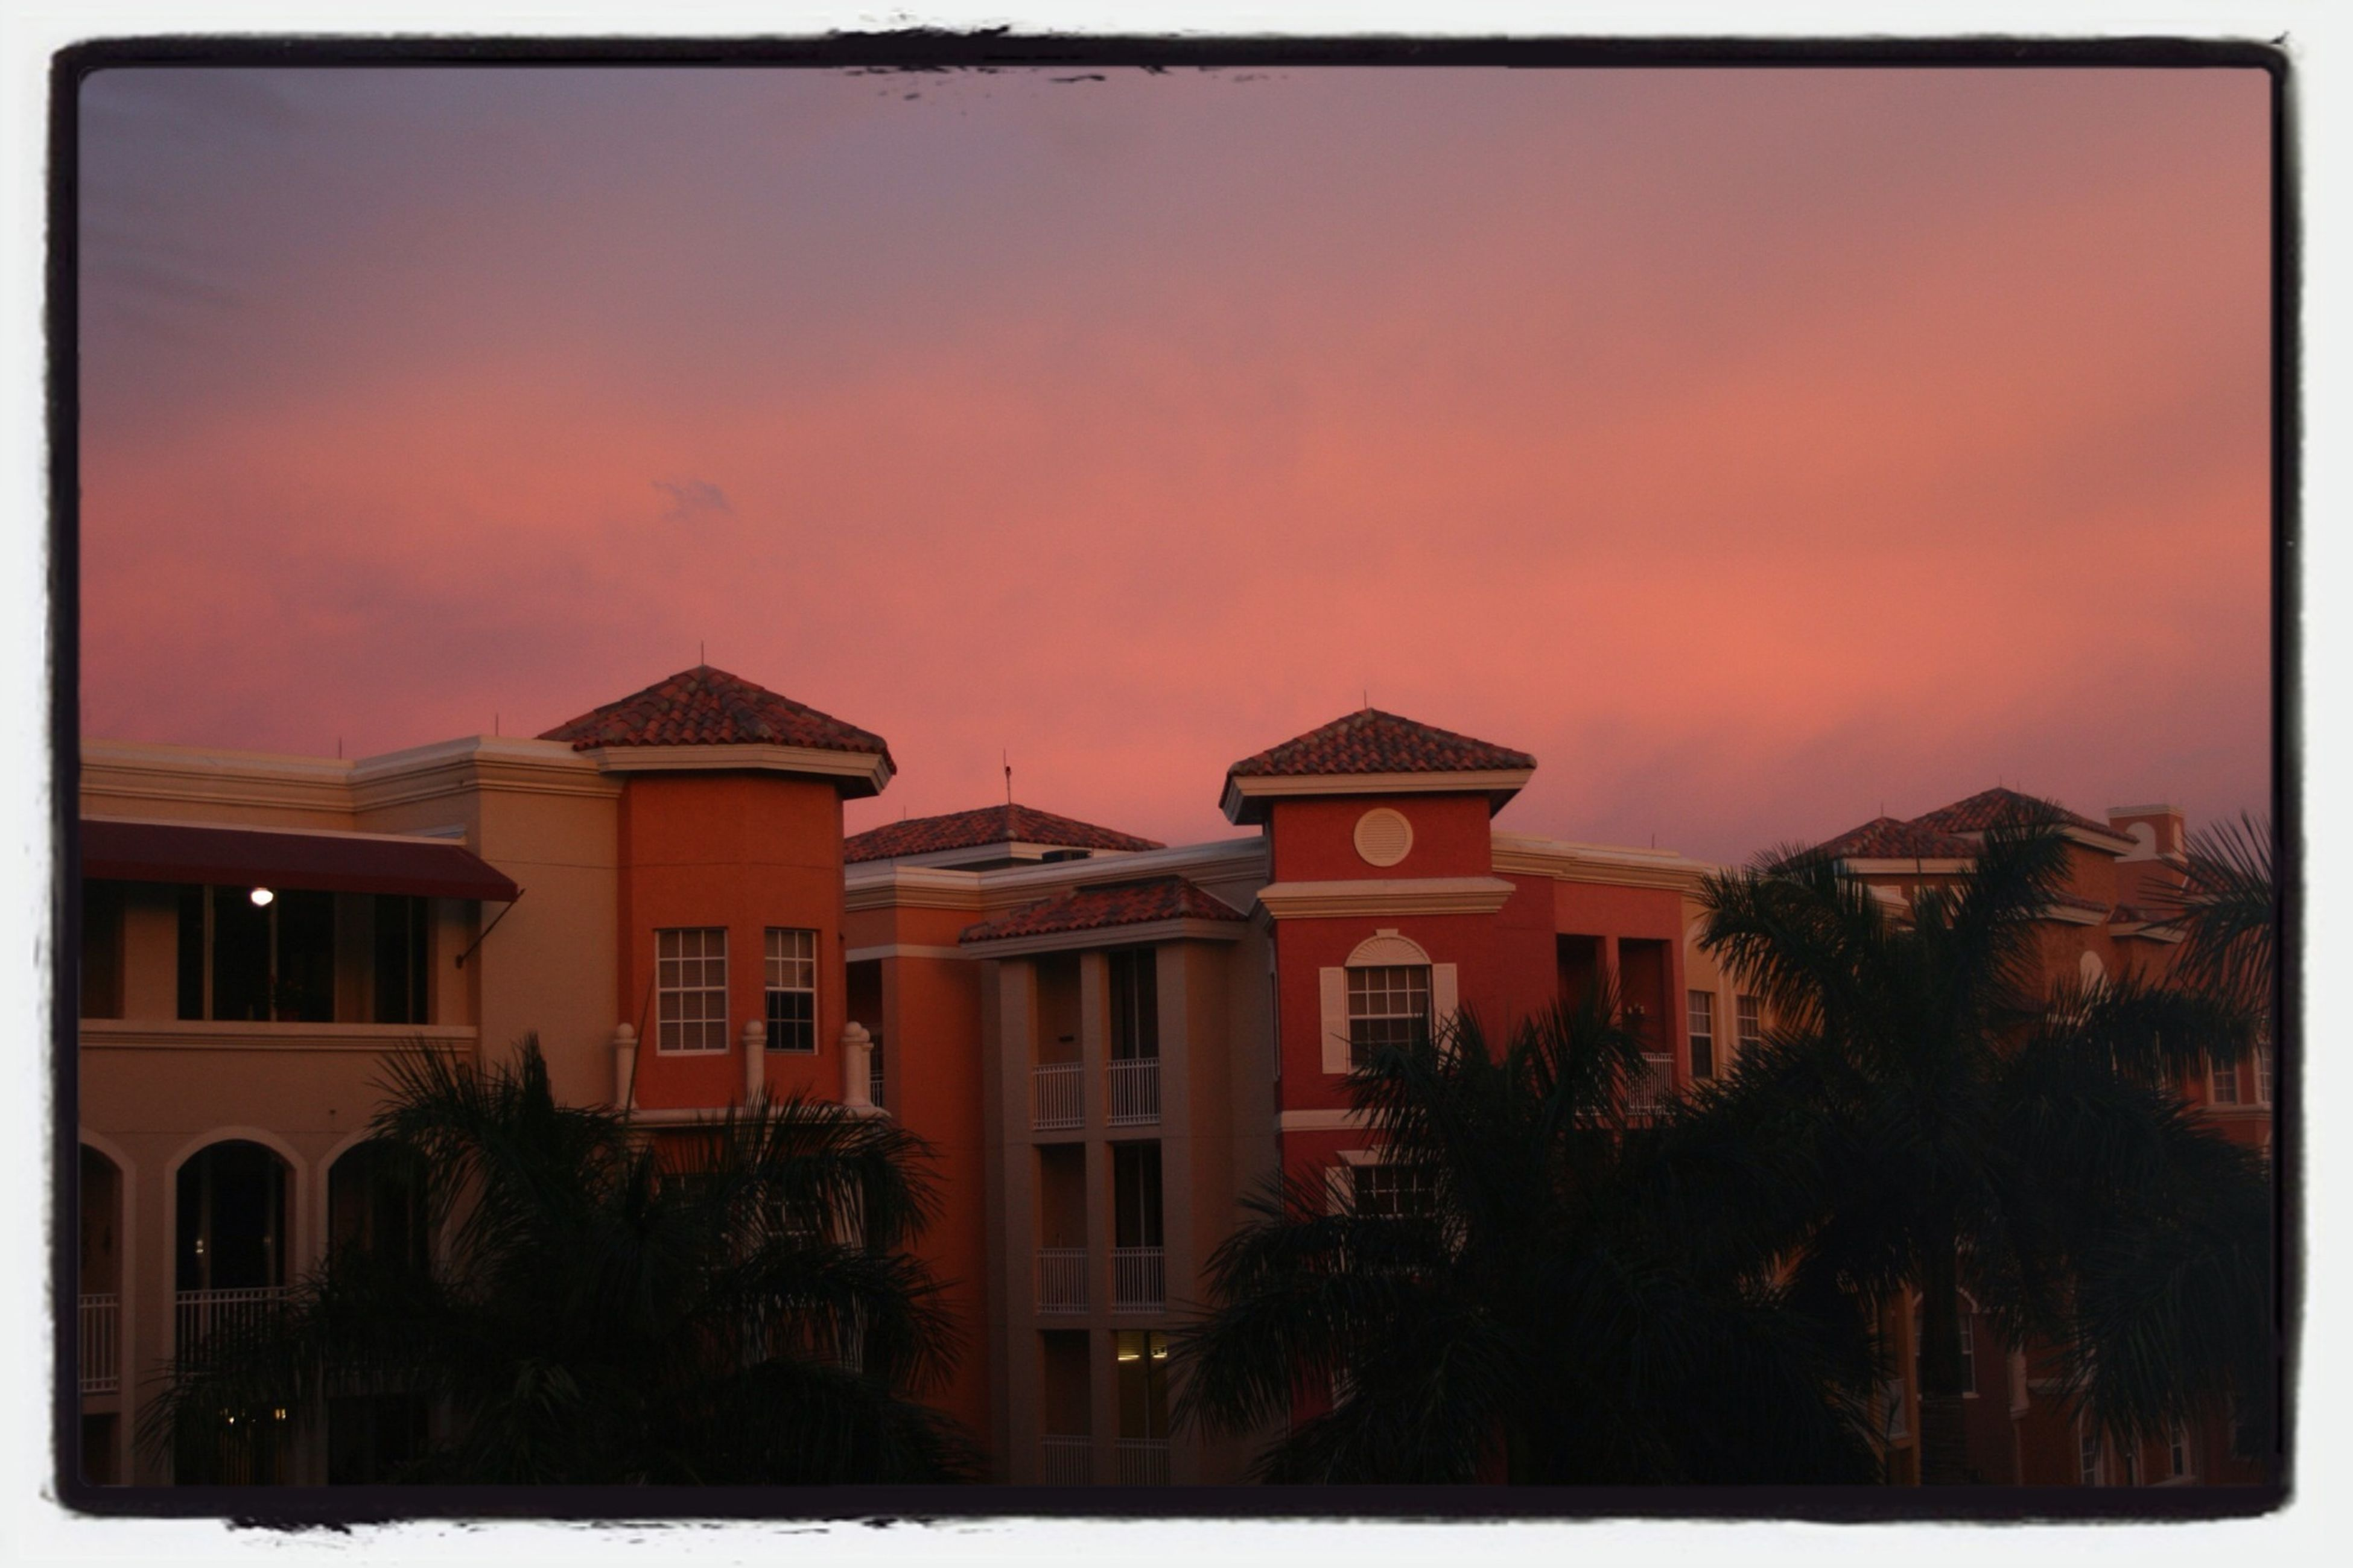 building exterior, architecture, built structure, transfer print, sunset, auto post production filter, sky, house, residential structure, residential building, orange color, city, building, tree, dusk, cloud - sky, outdoors, no people, residential district, low angle view